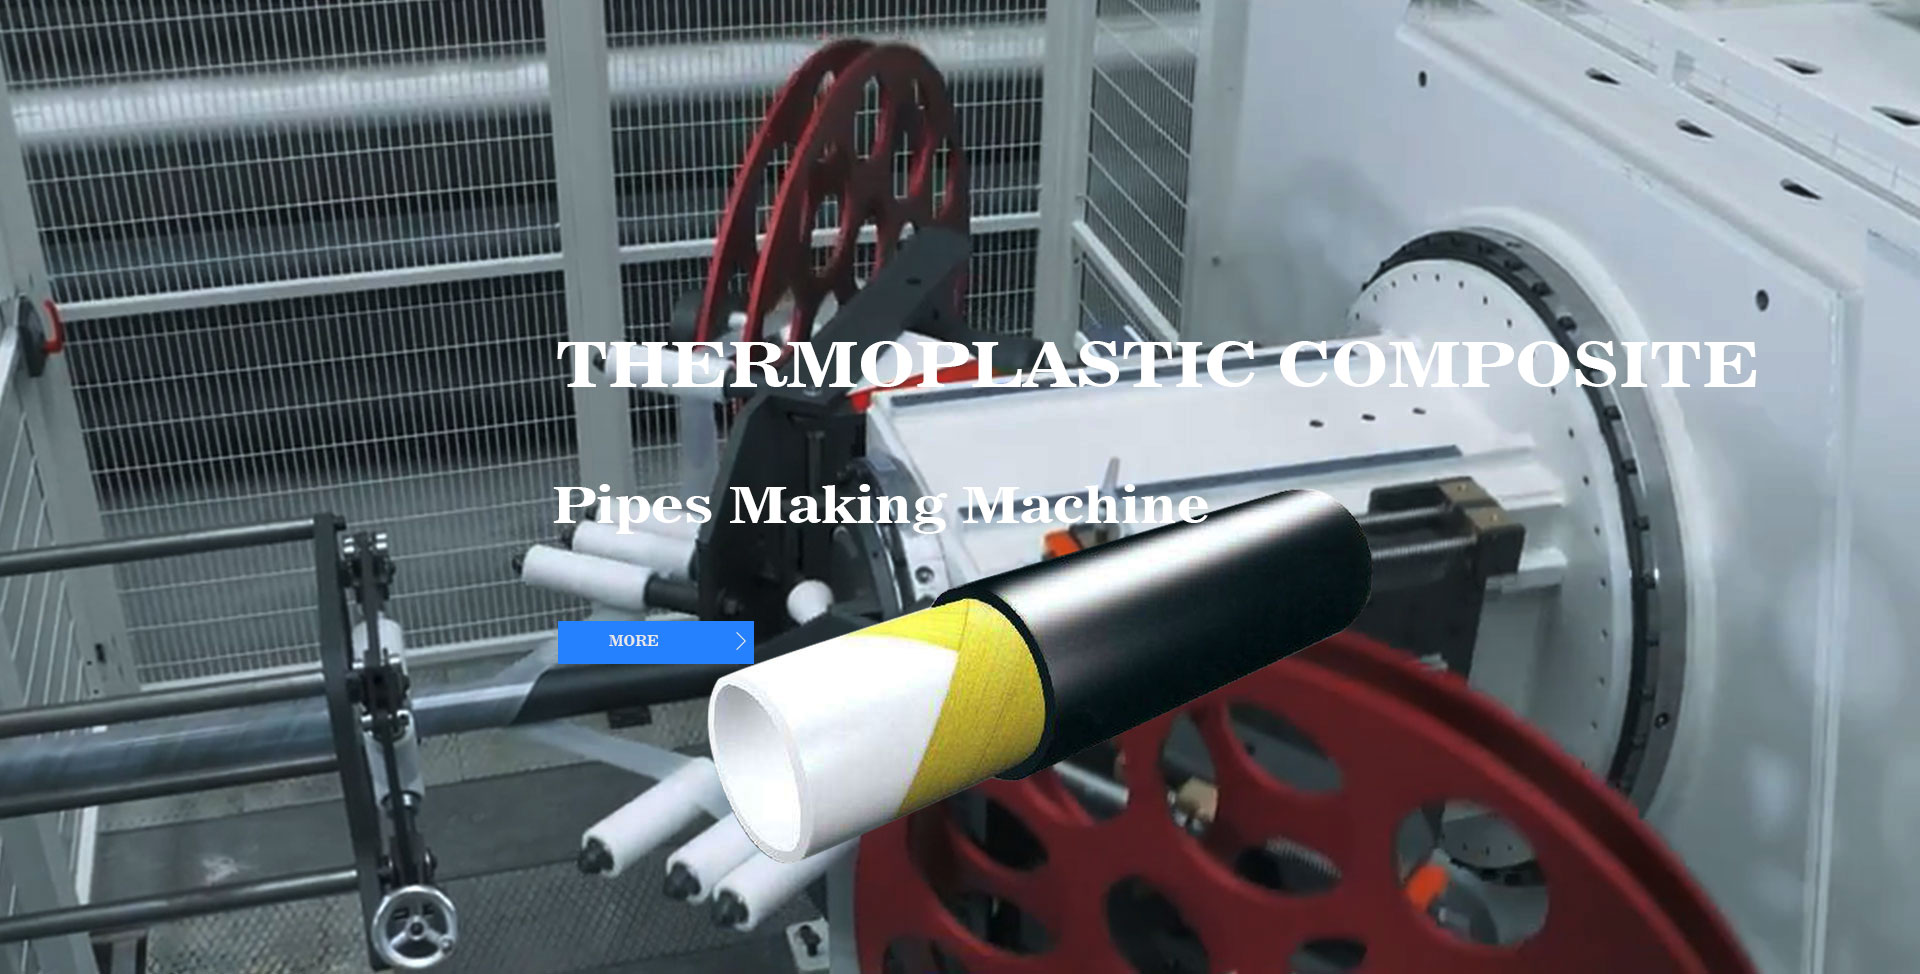 Thermoplastic Composite Pipes Making Machine